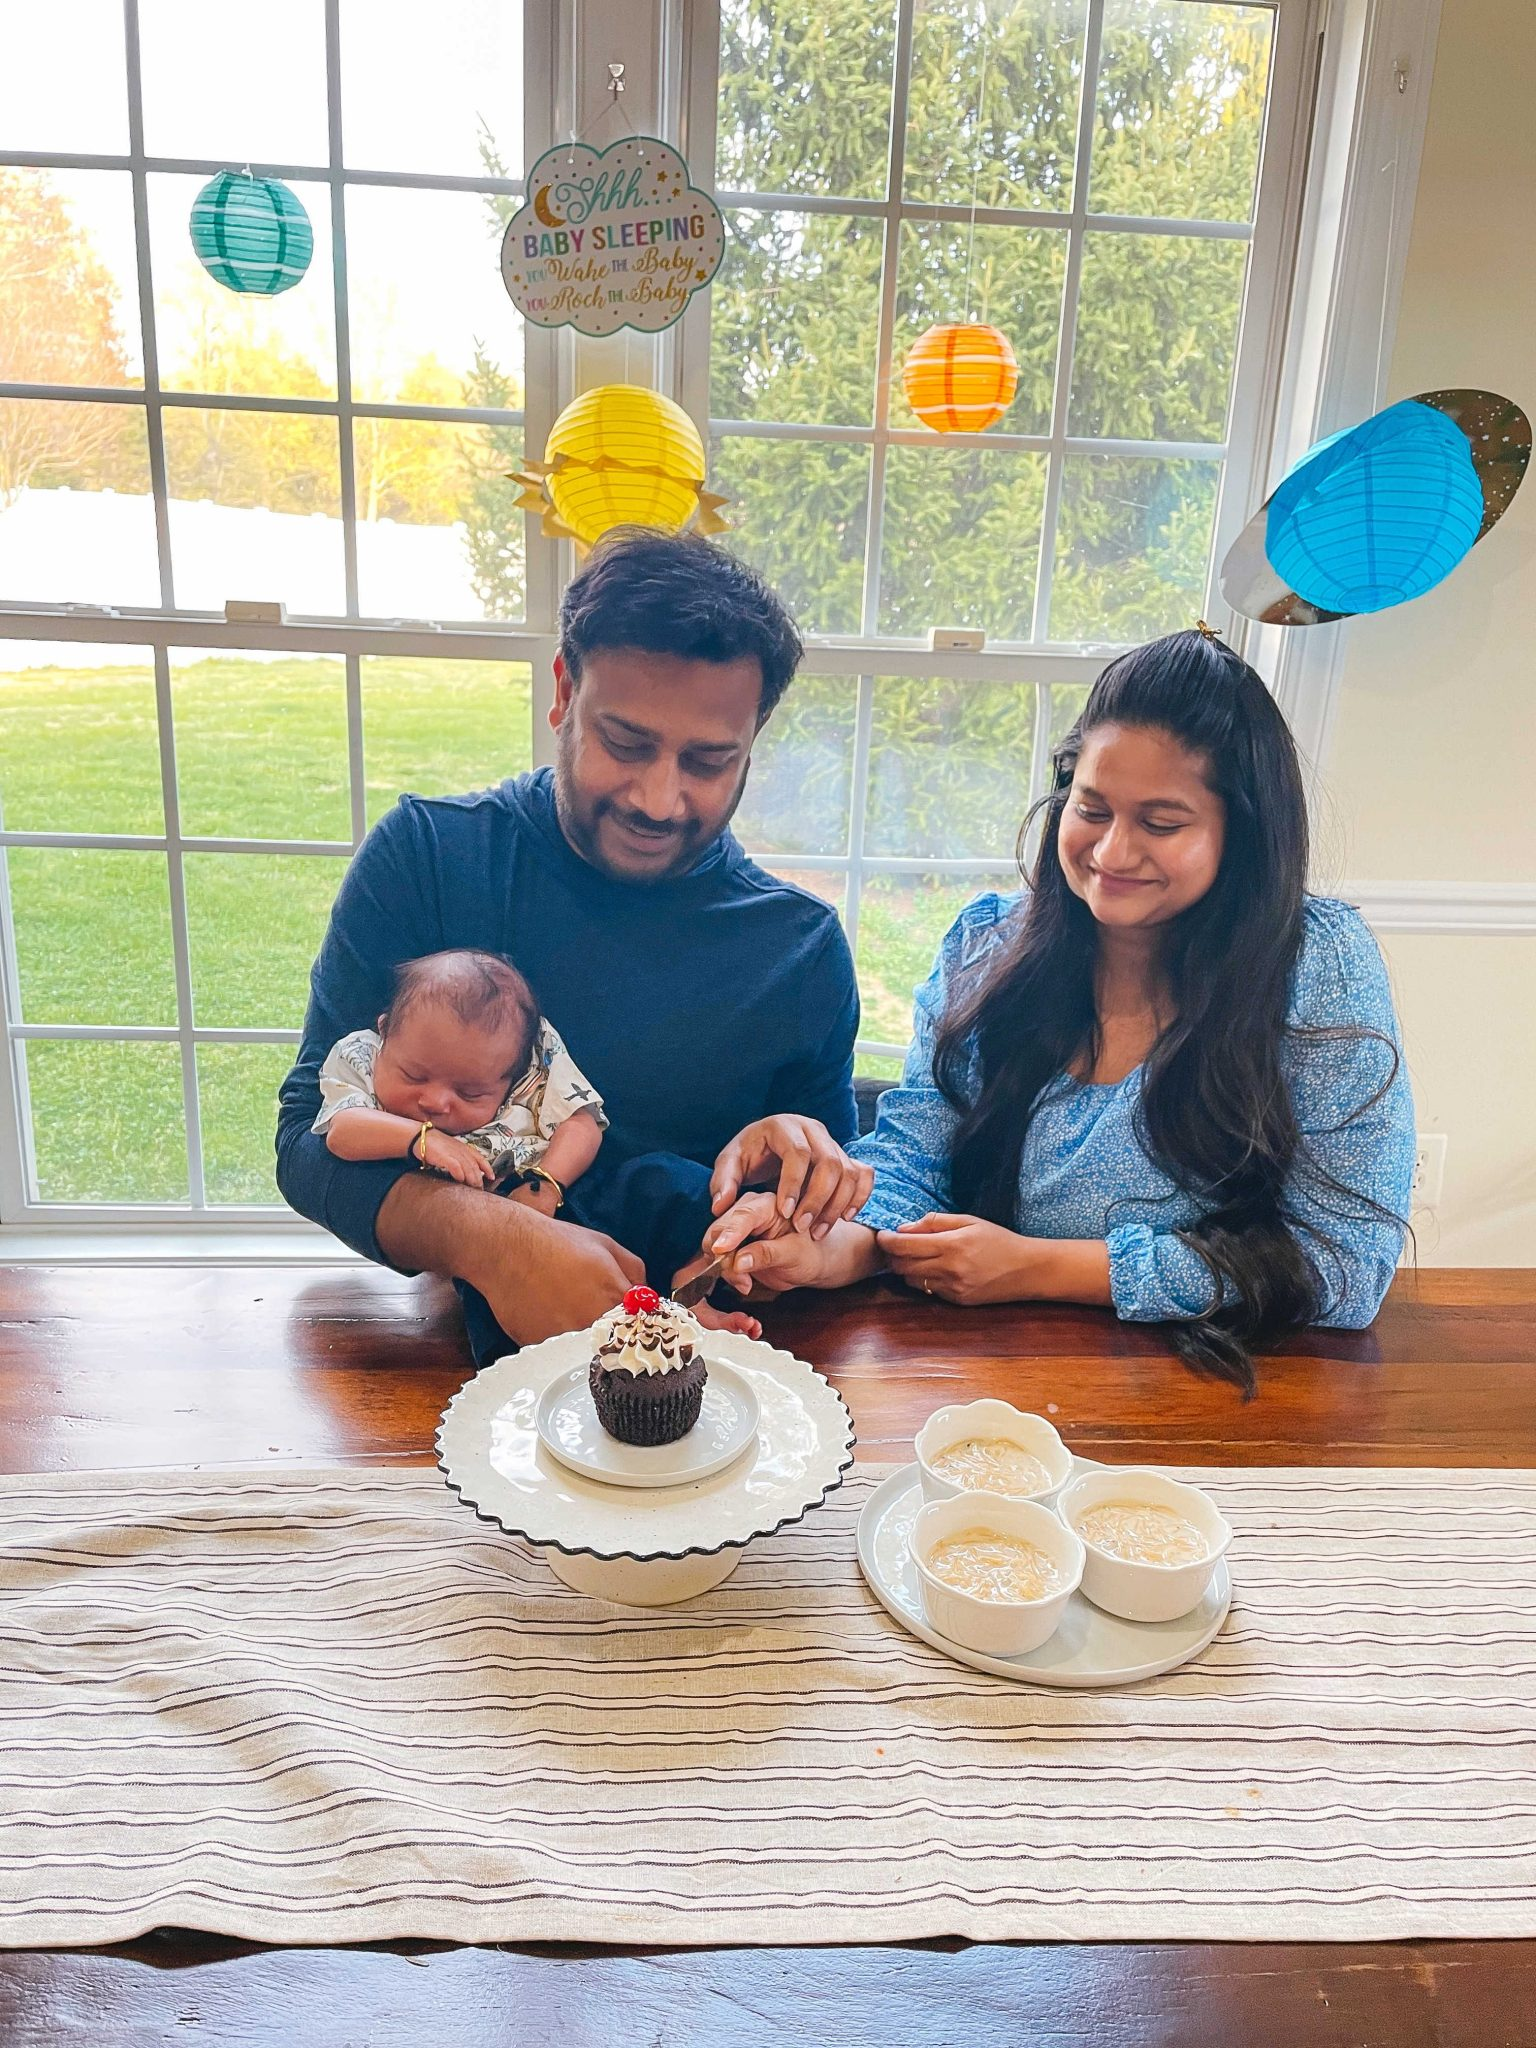 1 month with our baby boy Vihaan1 |1 Month Baby by popular Maryland motherhood blog, Dreaming Loud: image of a husband and wife sitting together at a table while holding their one month old baby and cutting into a cupcake.